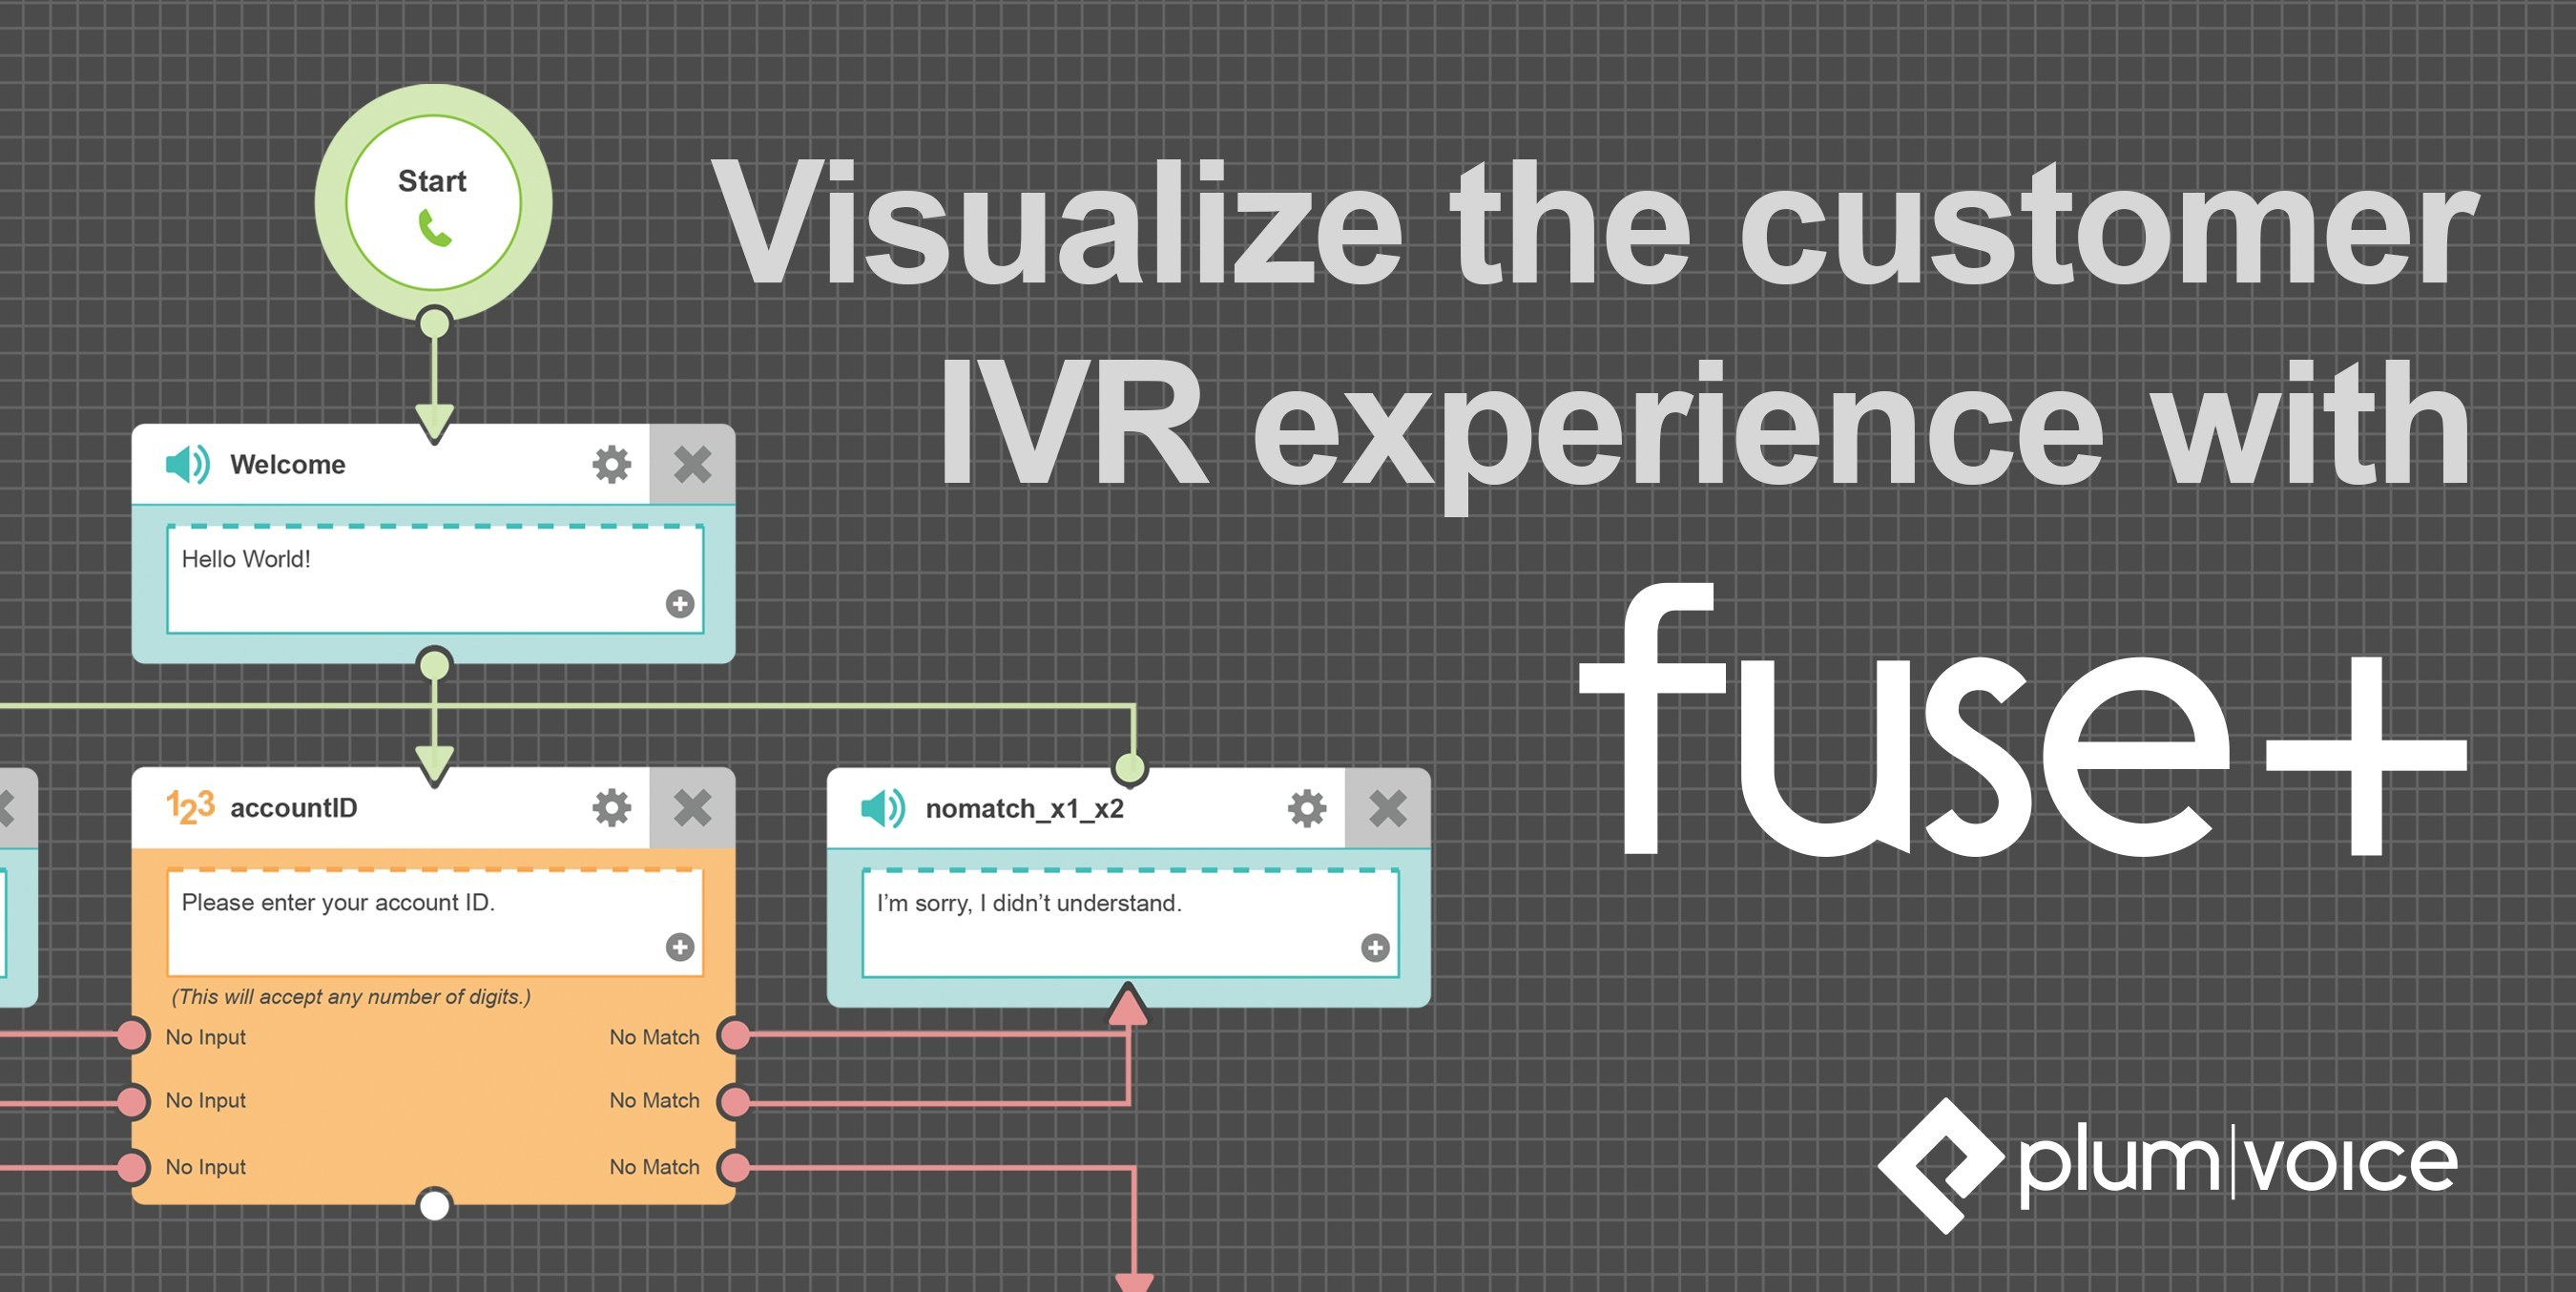 Plum Fuse+ PCI-compliant and intuitive IVR editing and management technology